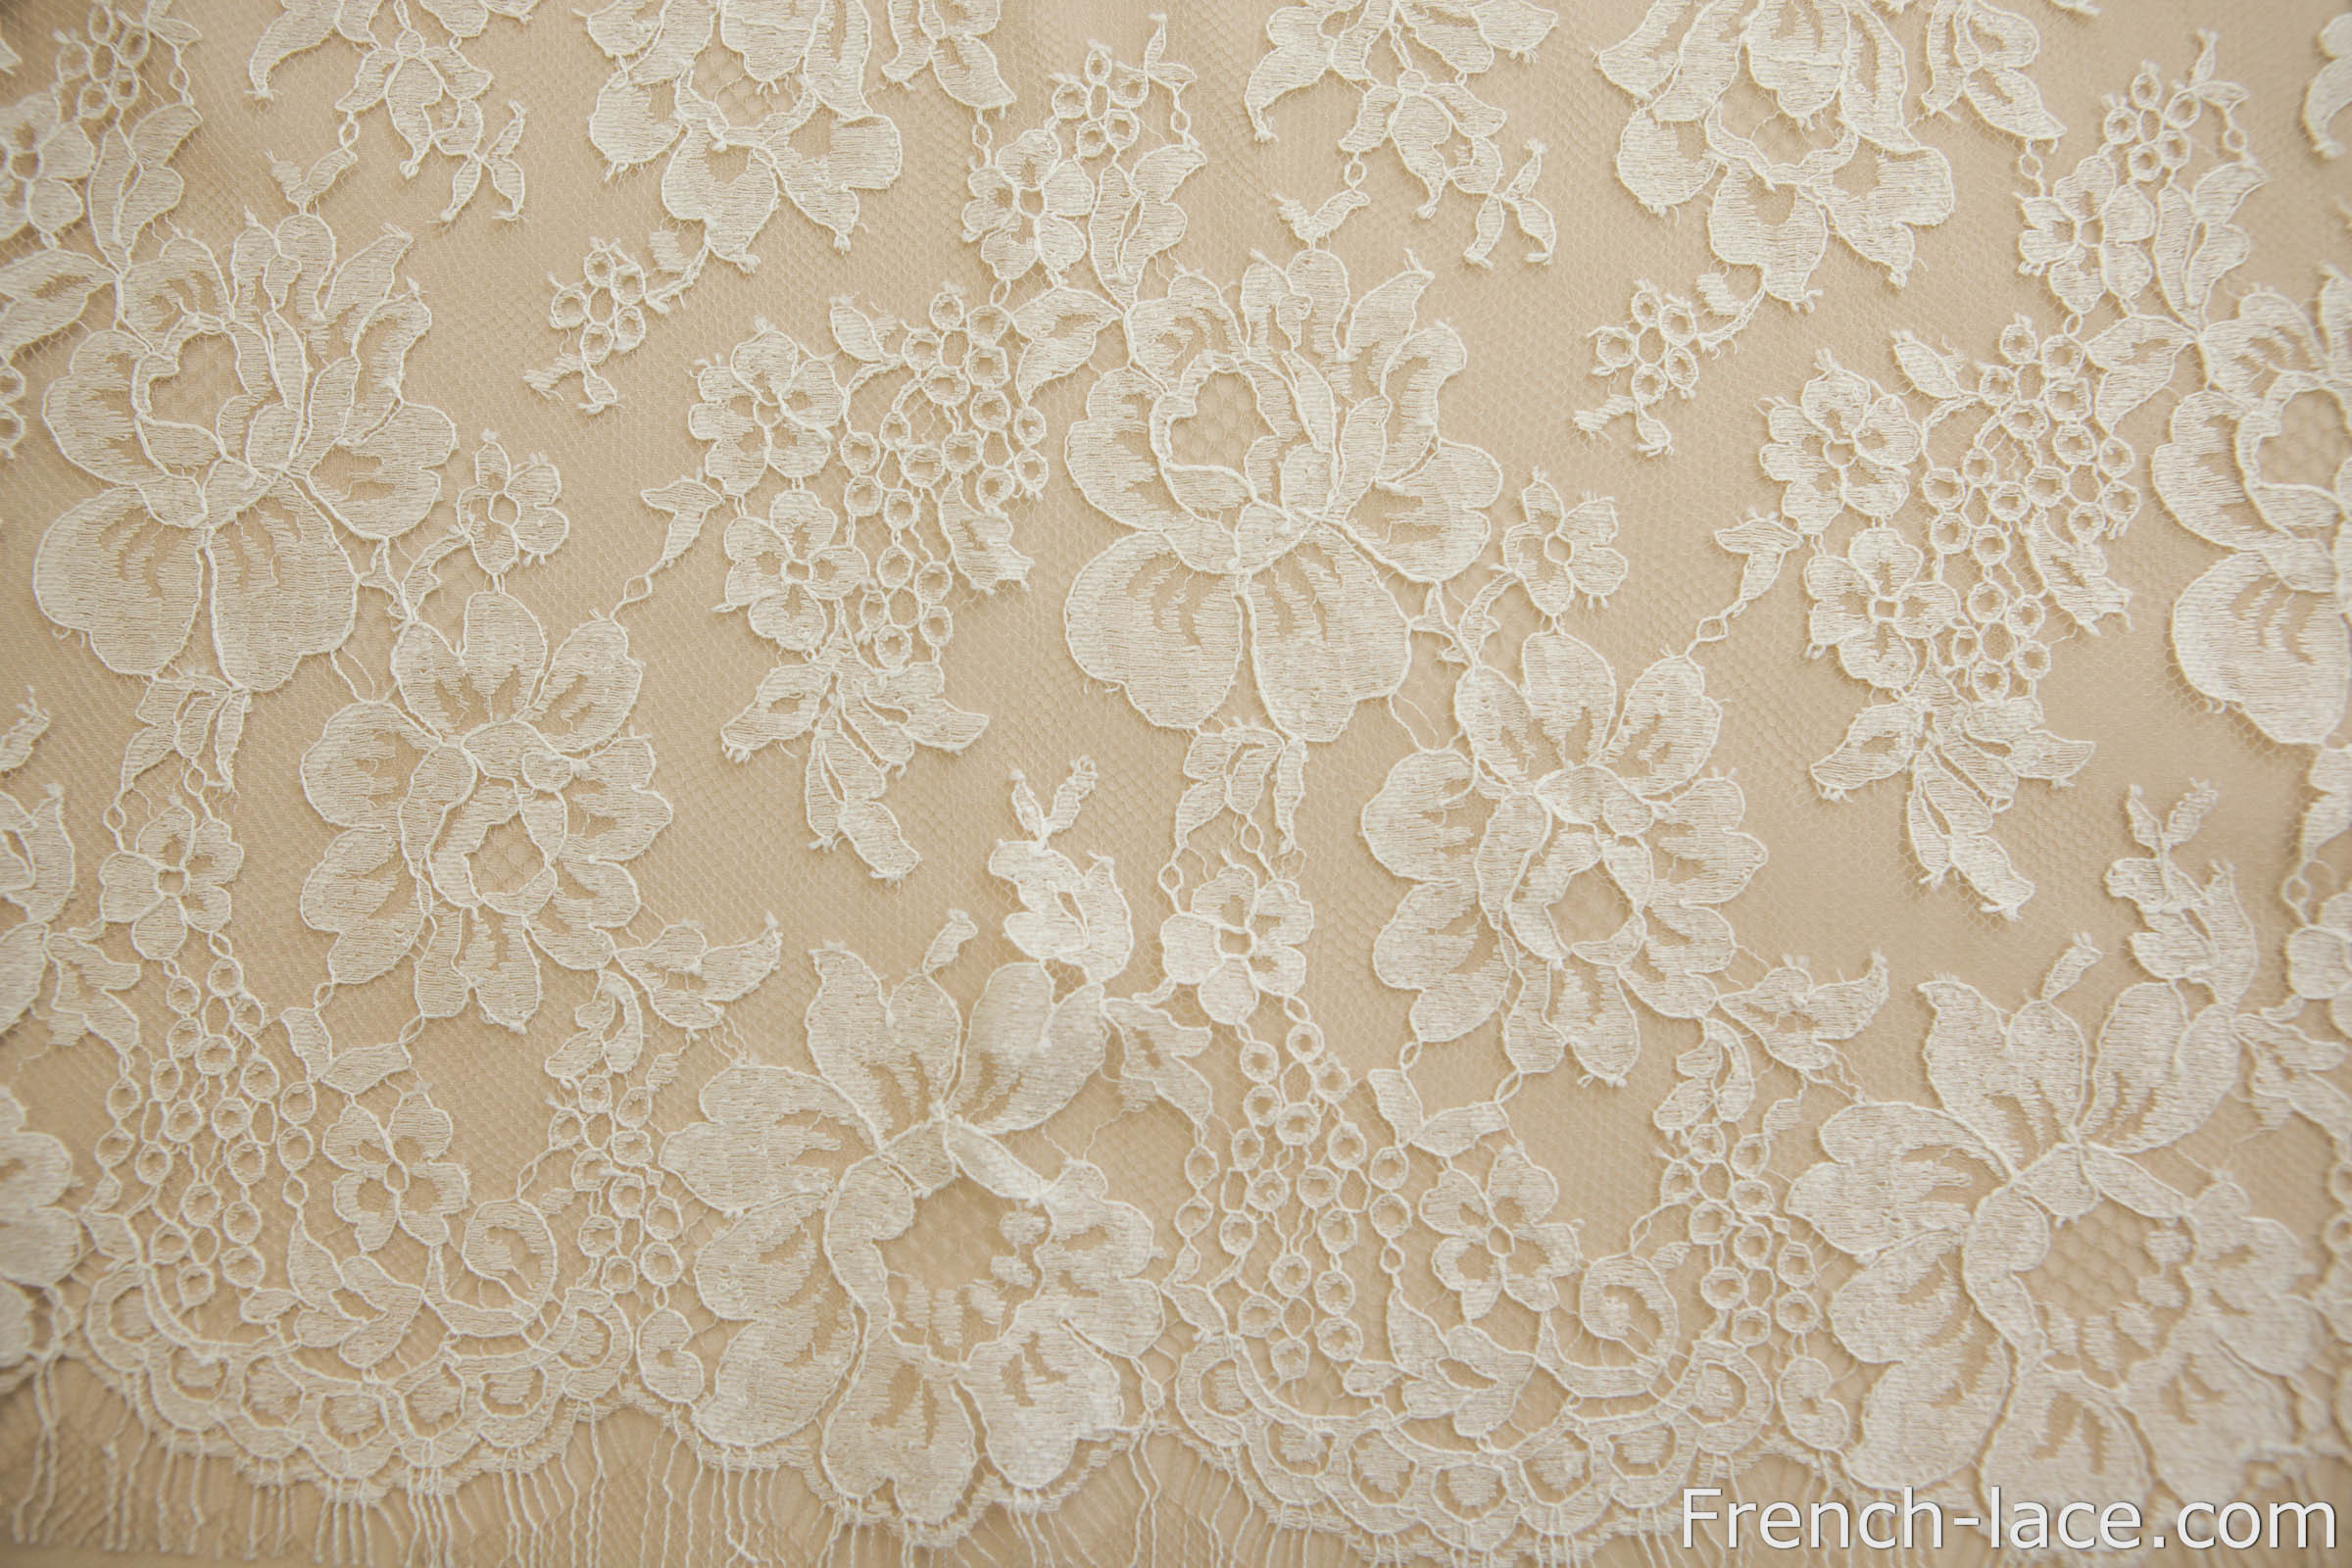 Black And Blue Floral Wallpaper Bello 50 Beige Sable French Lace Online Shop